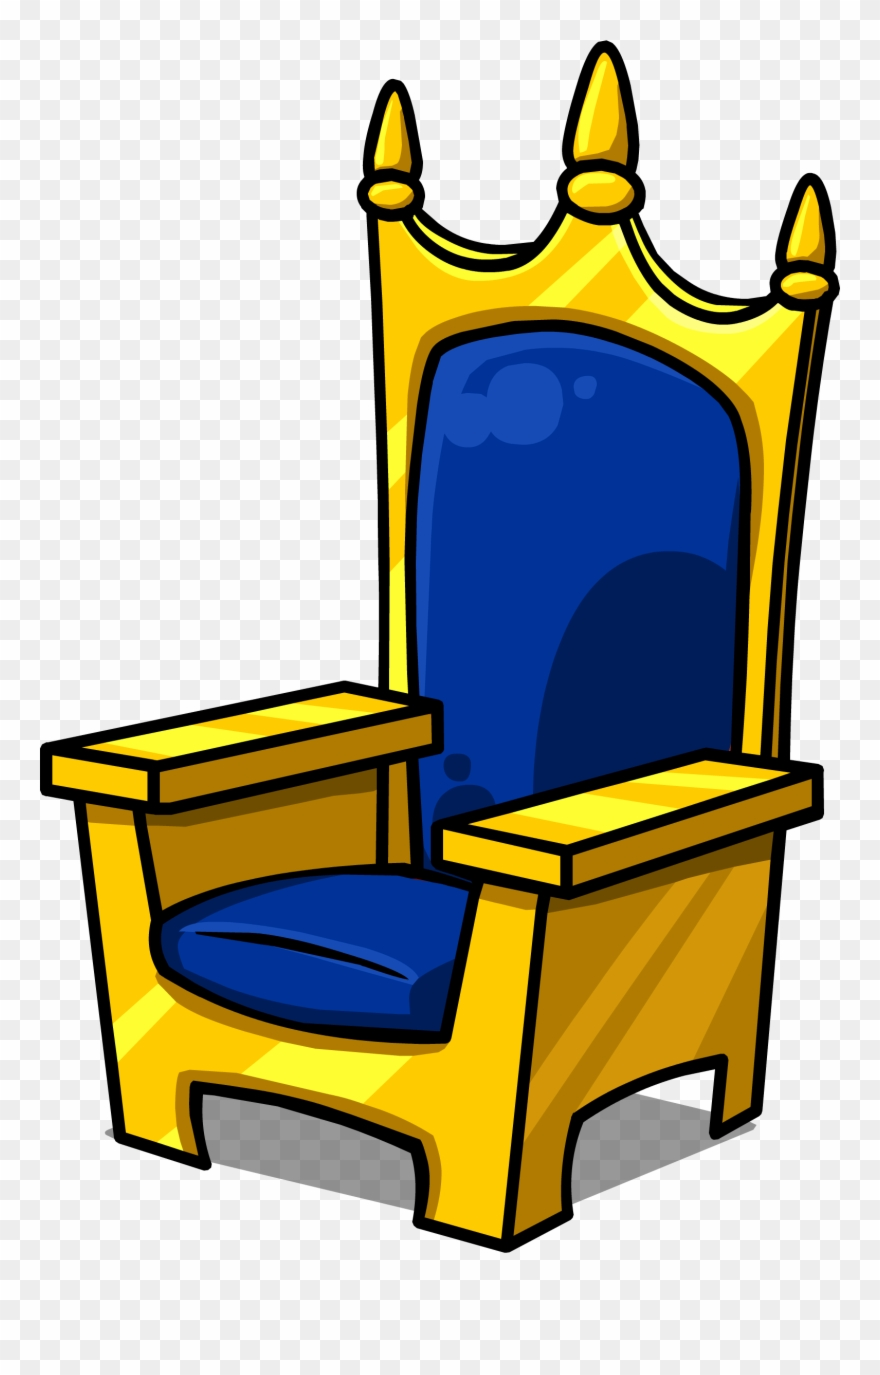 svg transparent library Throne clipart. Clip art png download.